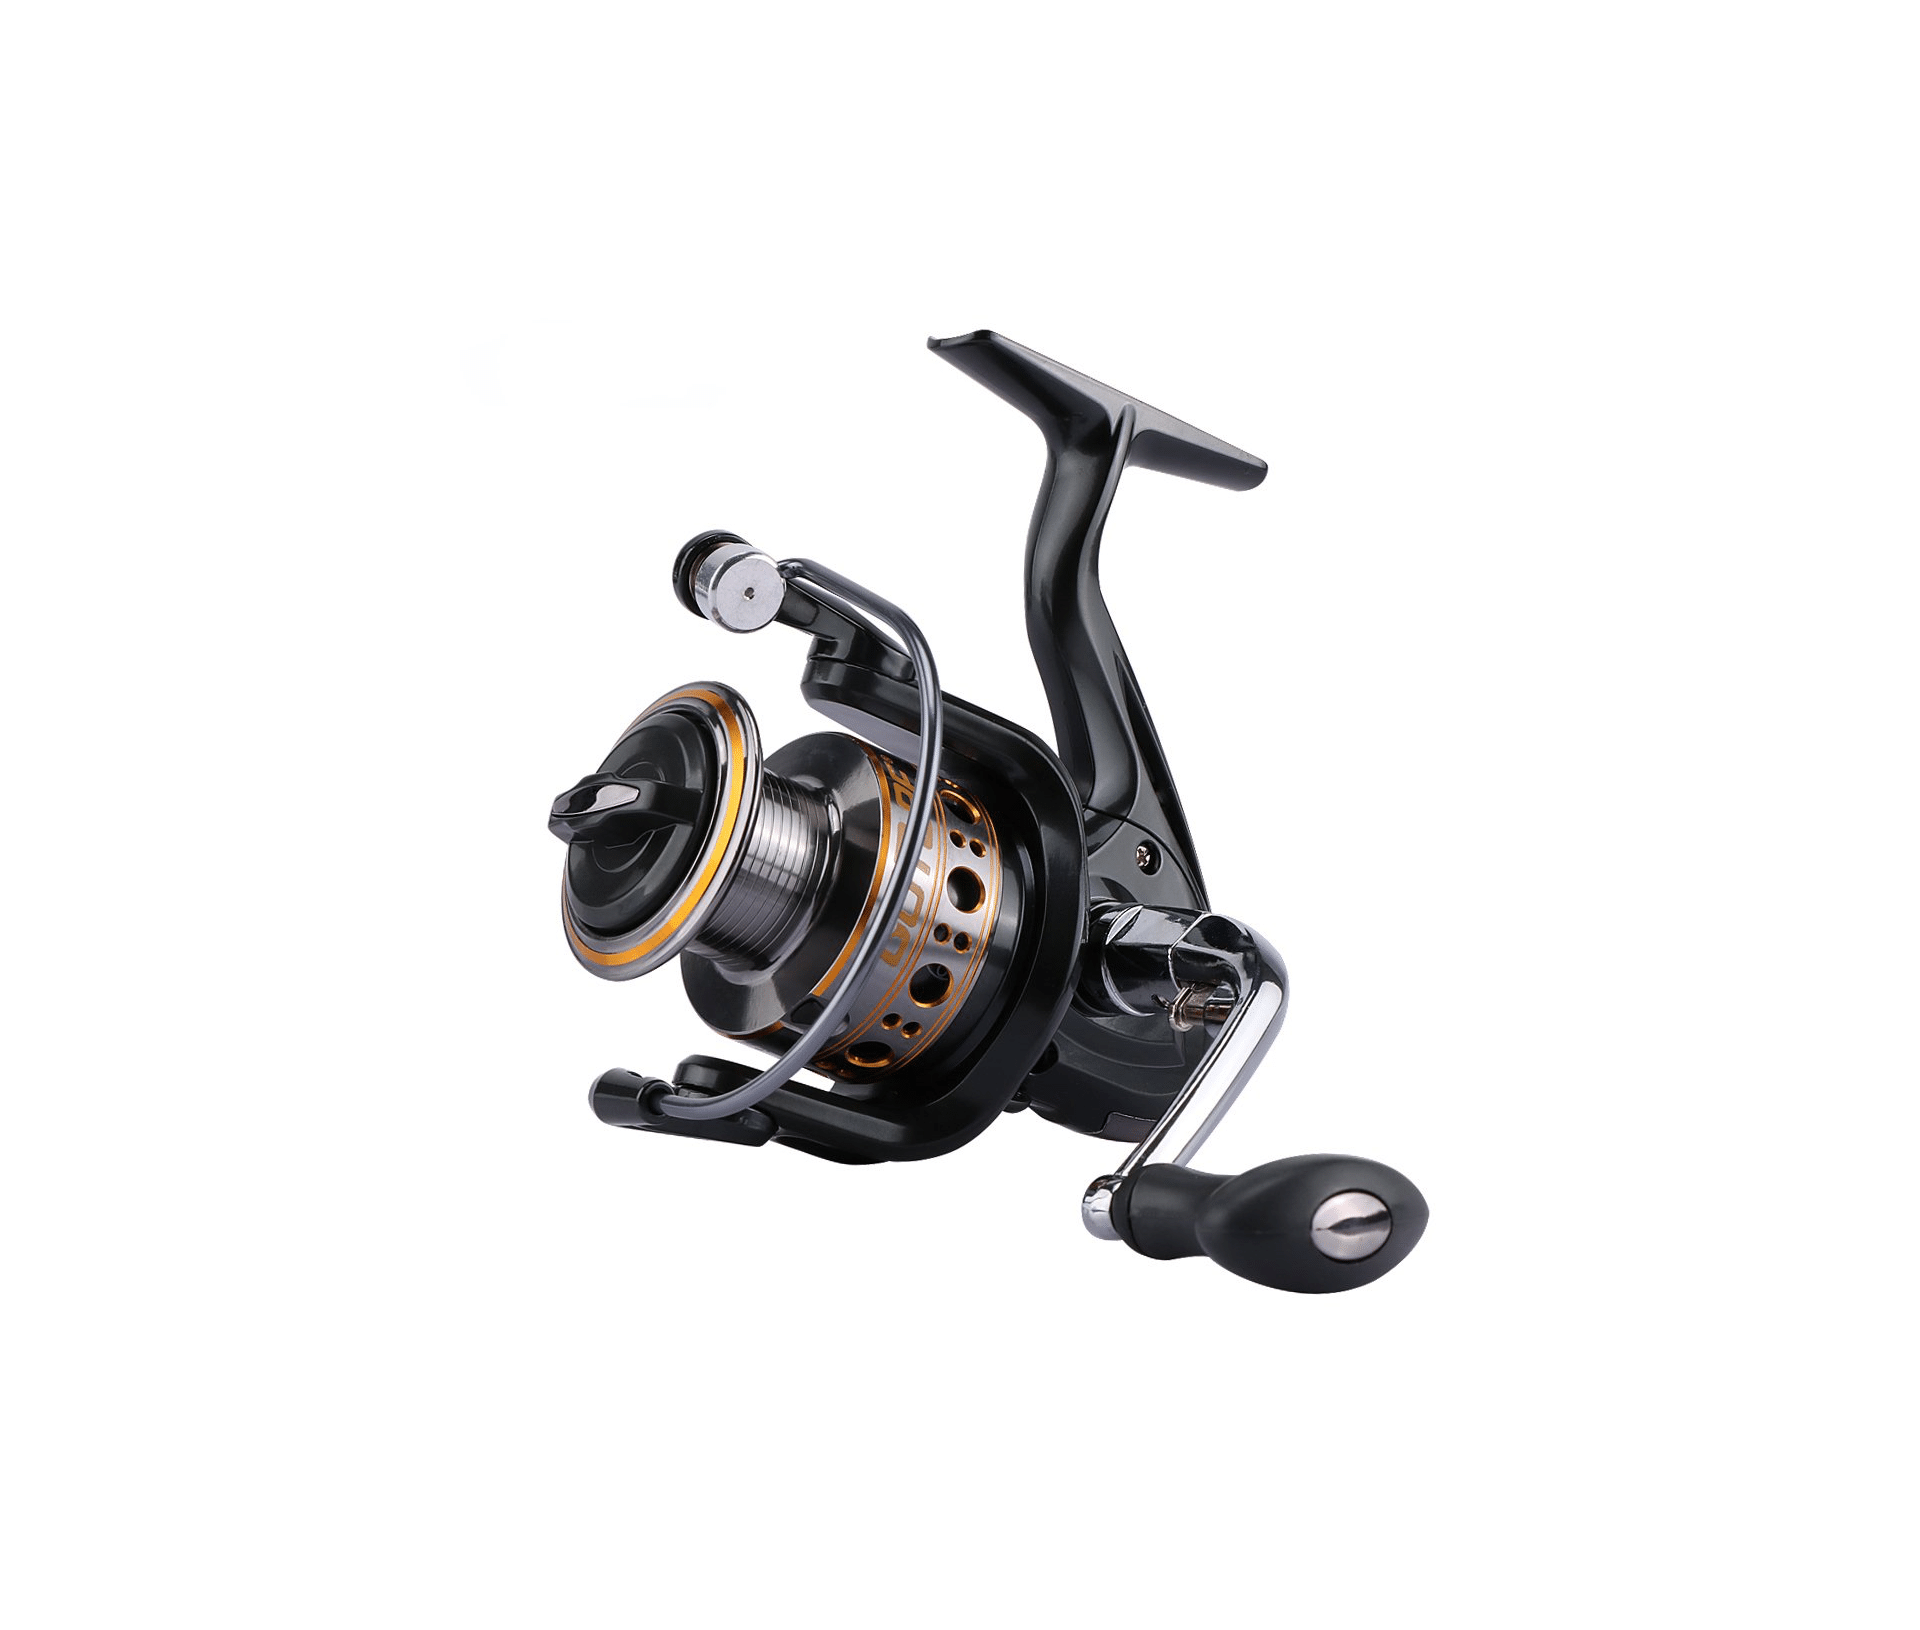 Goture-Fishing-Rod-and-Reel-Combo-3